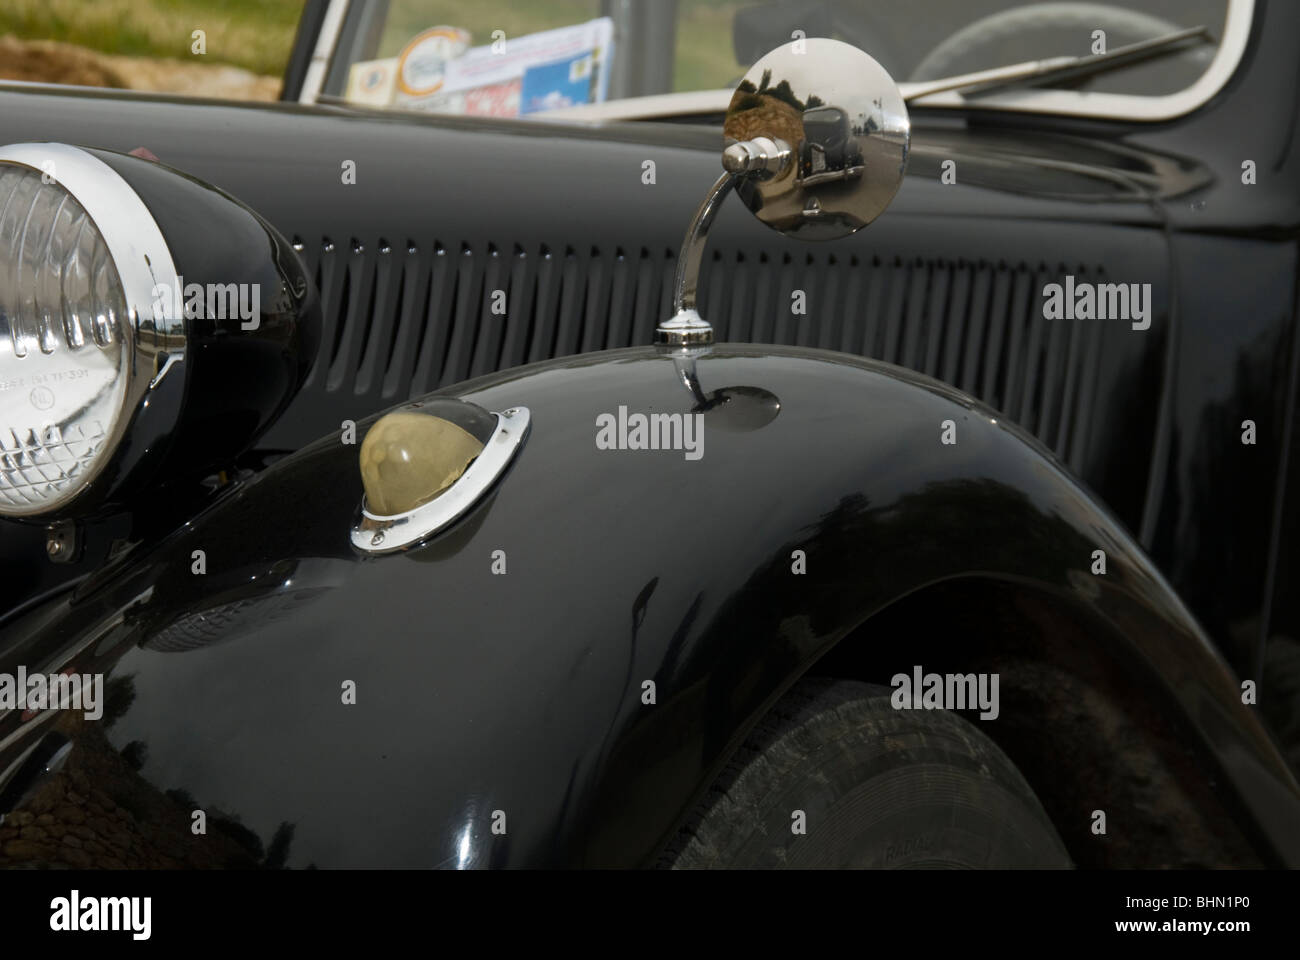 Detail view of vintage car - Stock Image